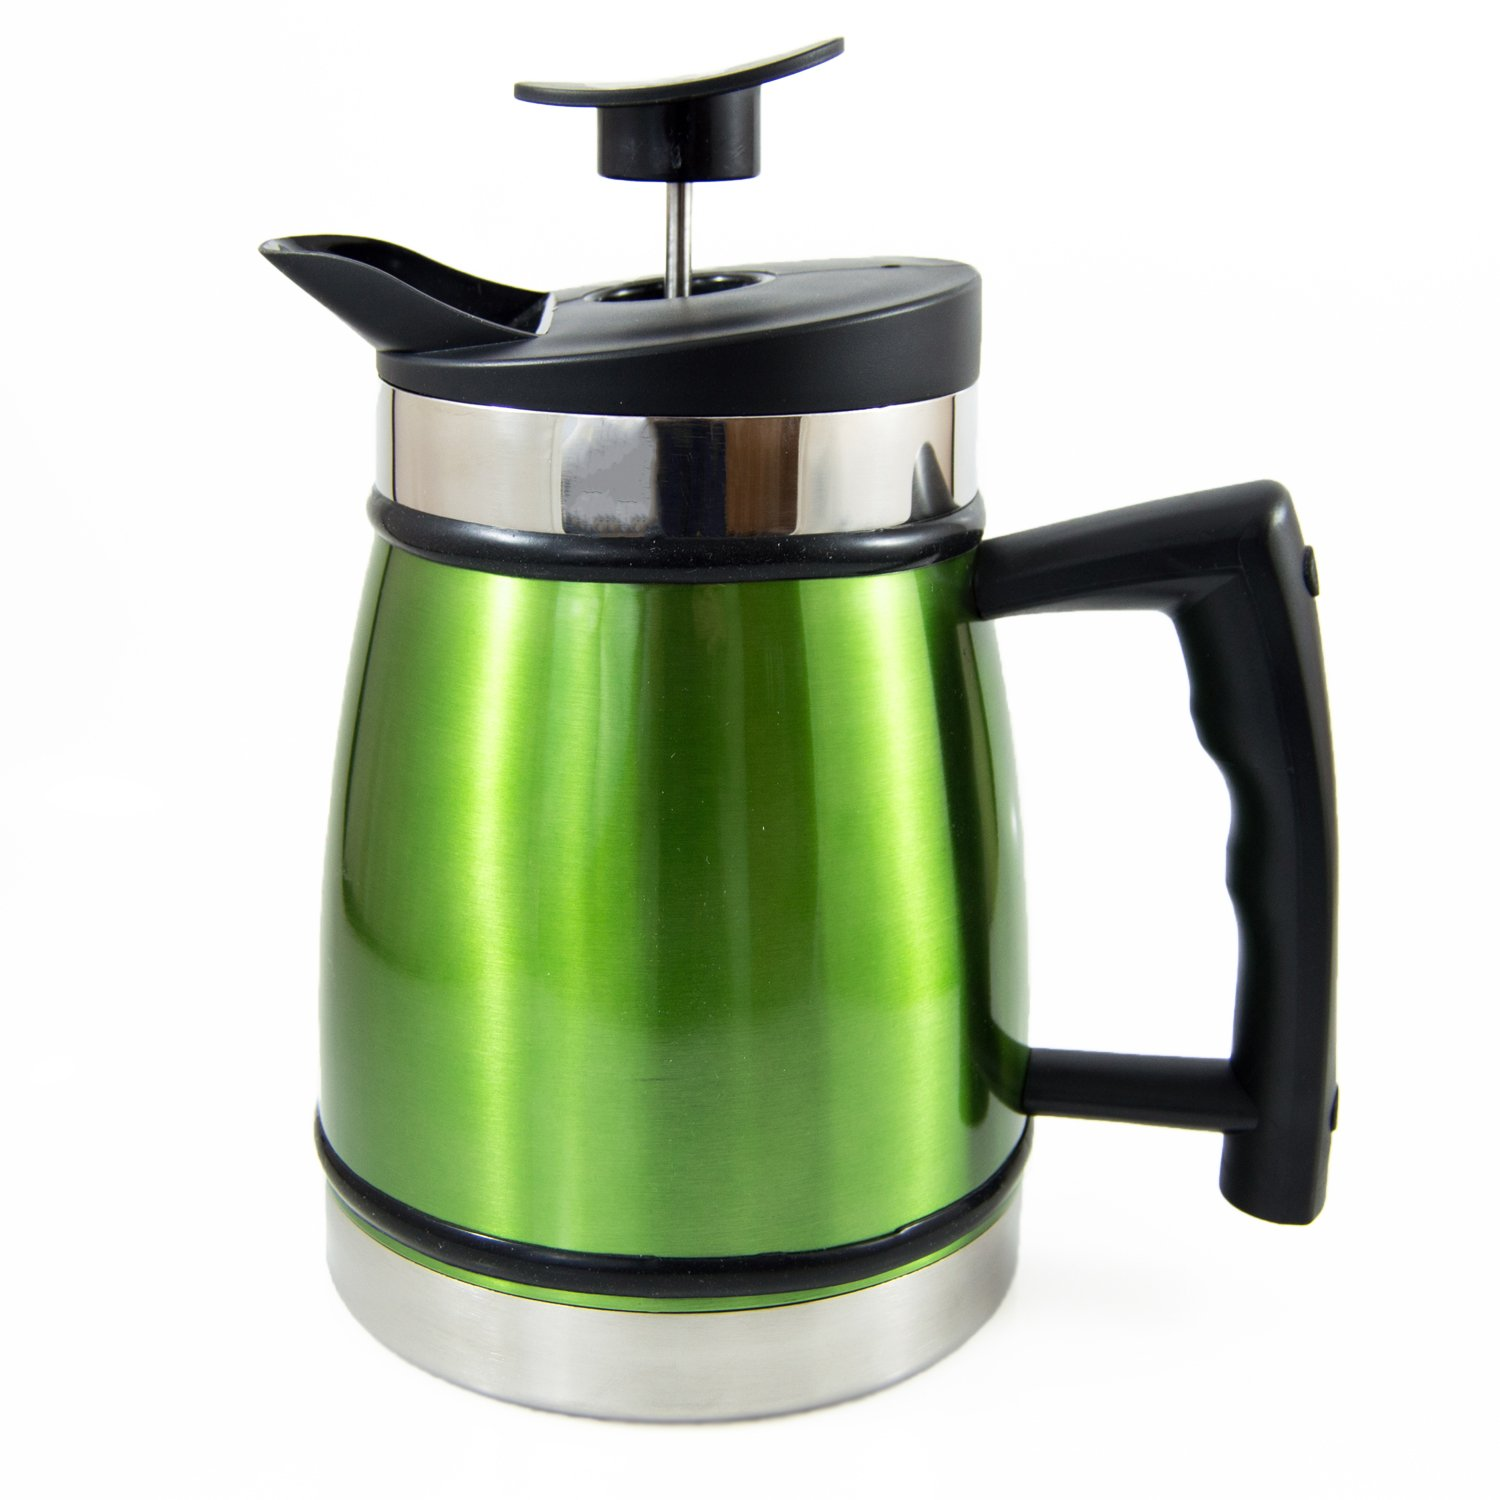 French Press Tabletop Coffee and Tea Maker with Bru Stop Technology - 32 oz - Stainless Steel - Green Tea